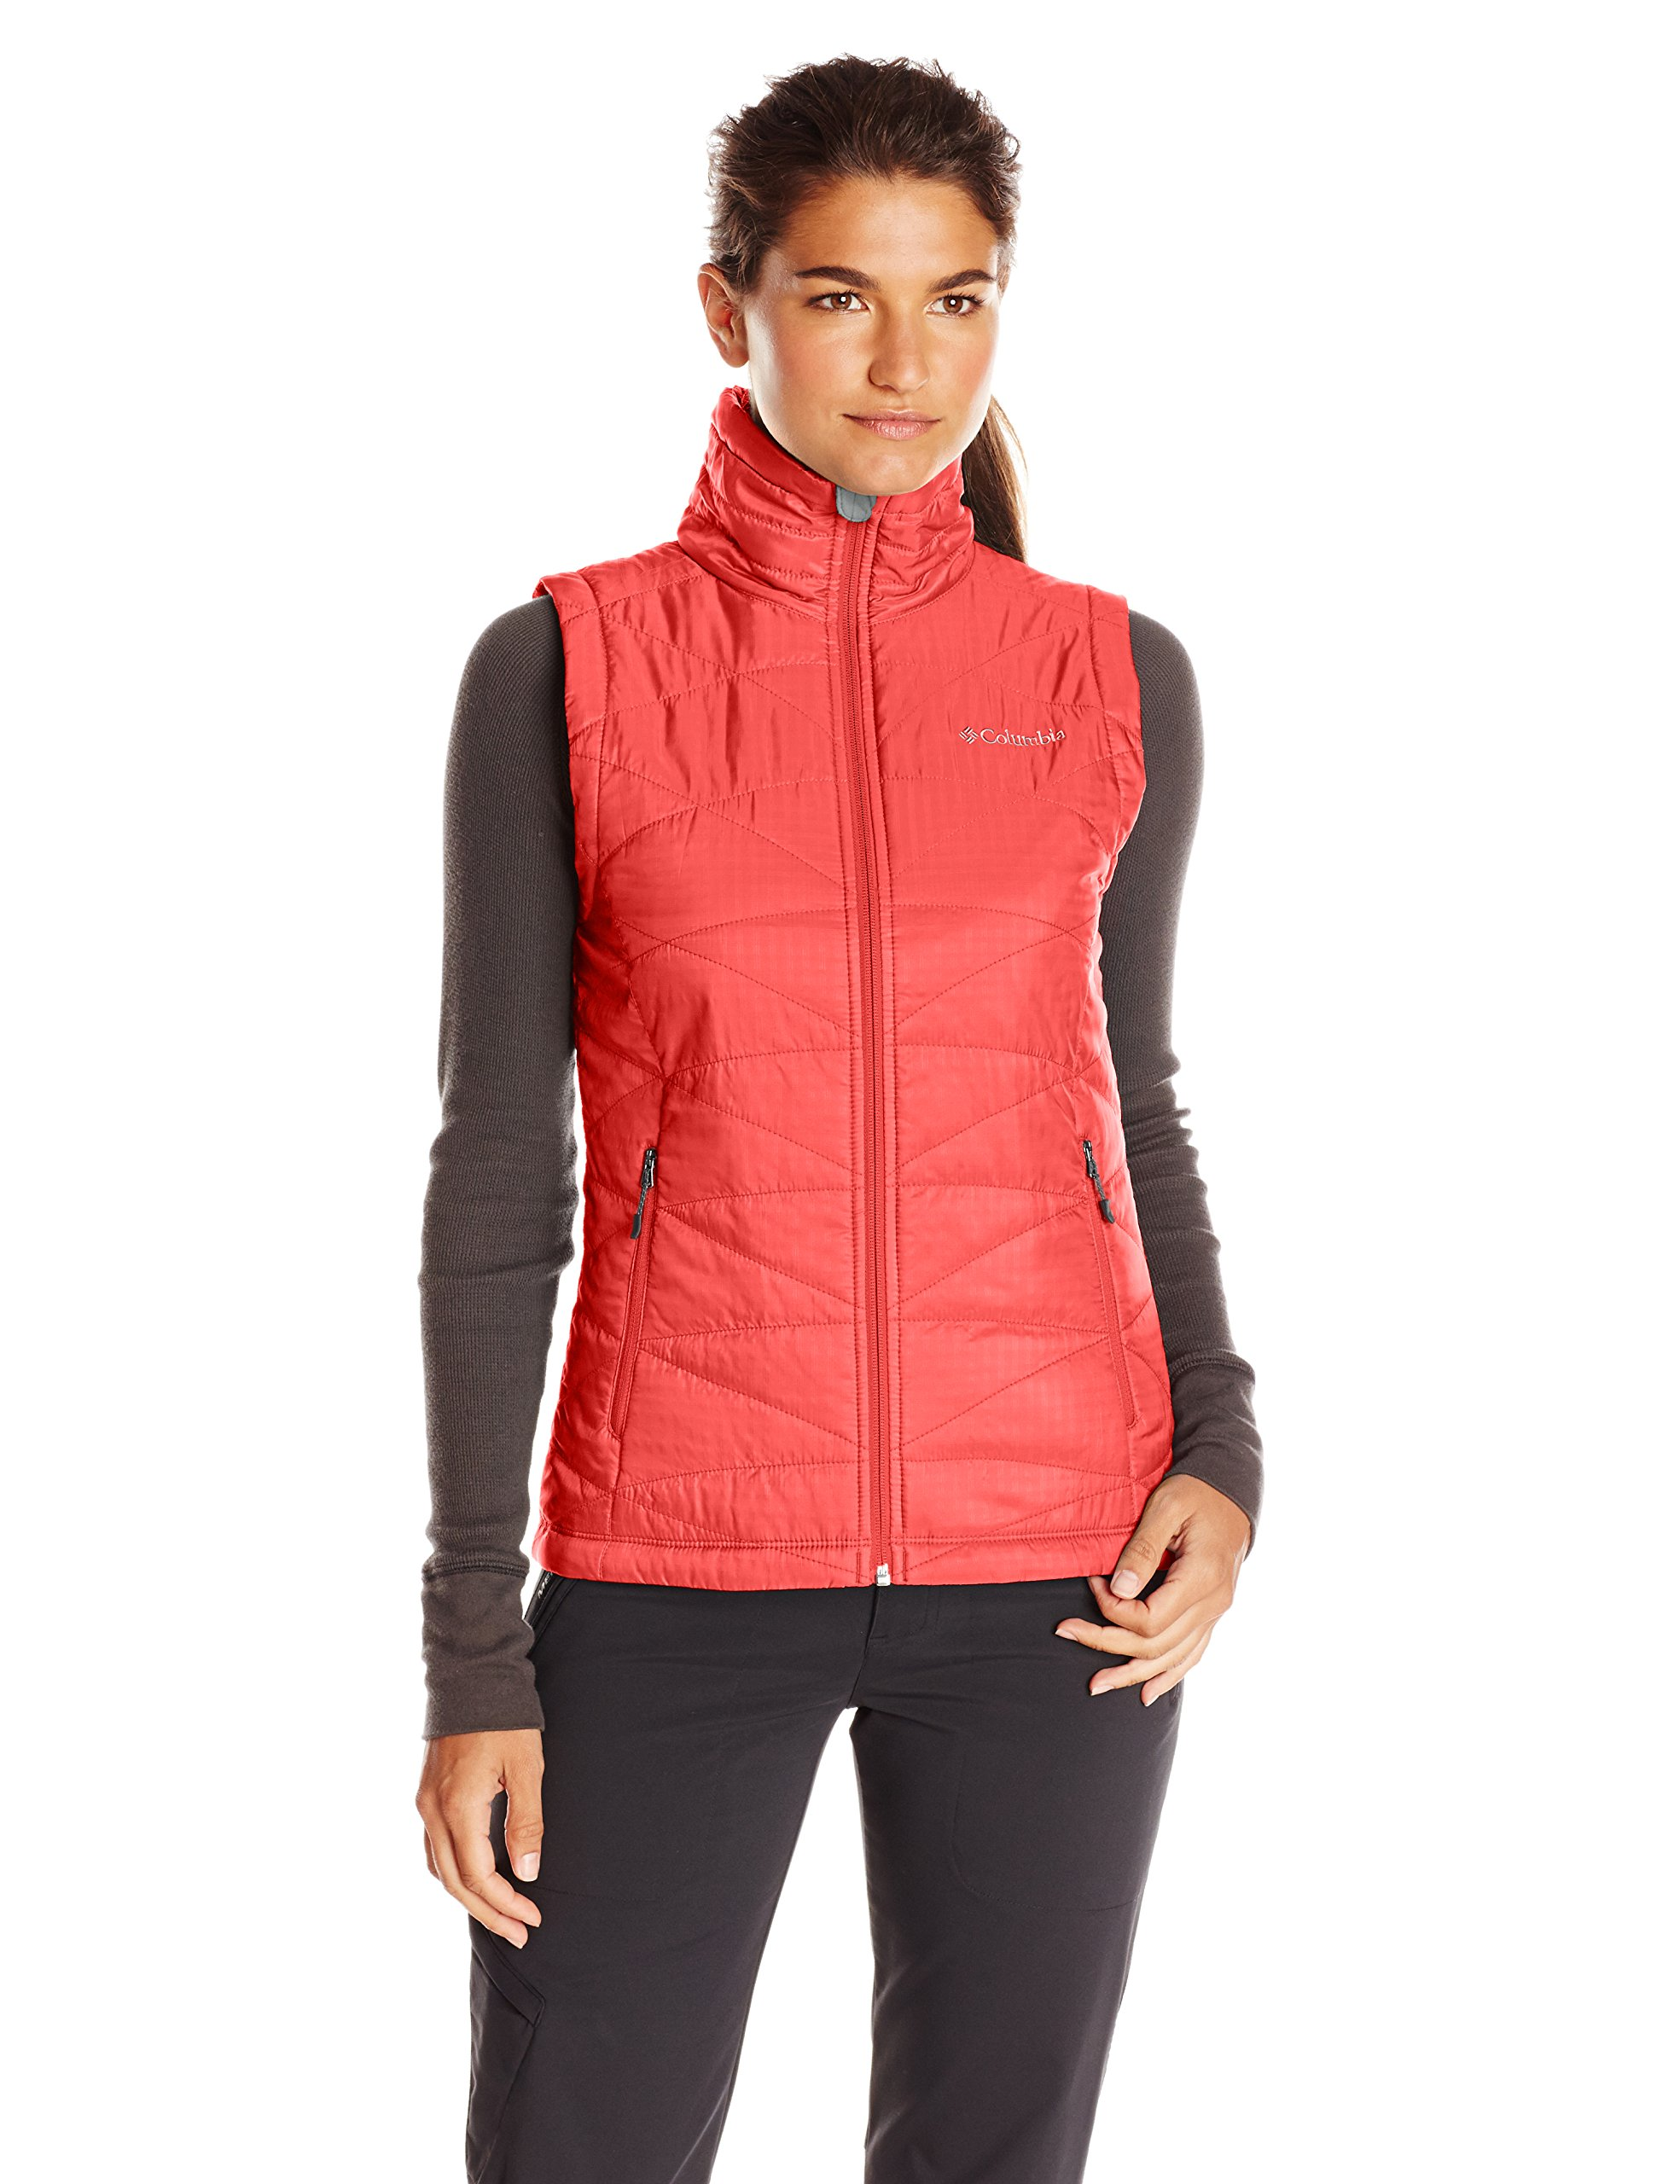 Columbia Women's Mighty Lite III Vest, Red Camellia, Large by Columbia